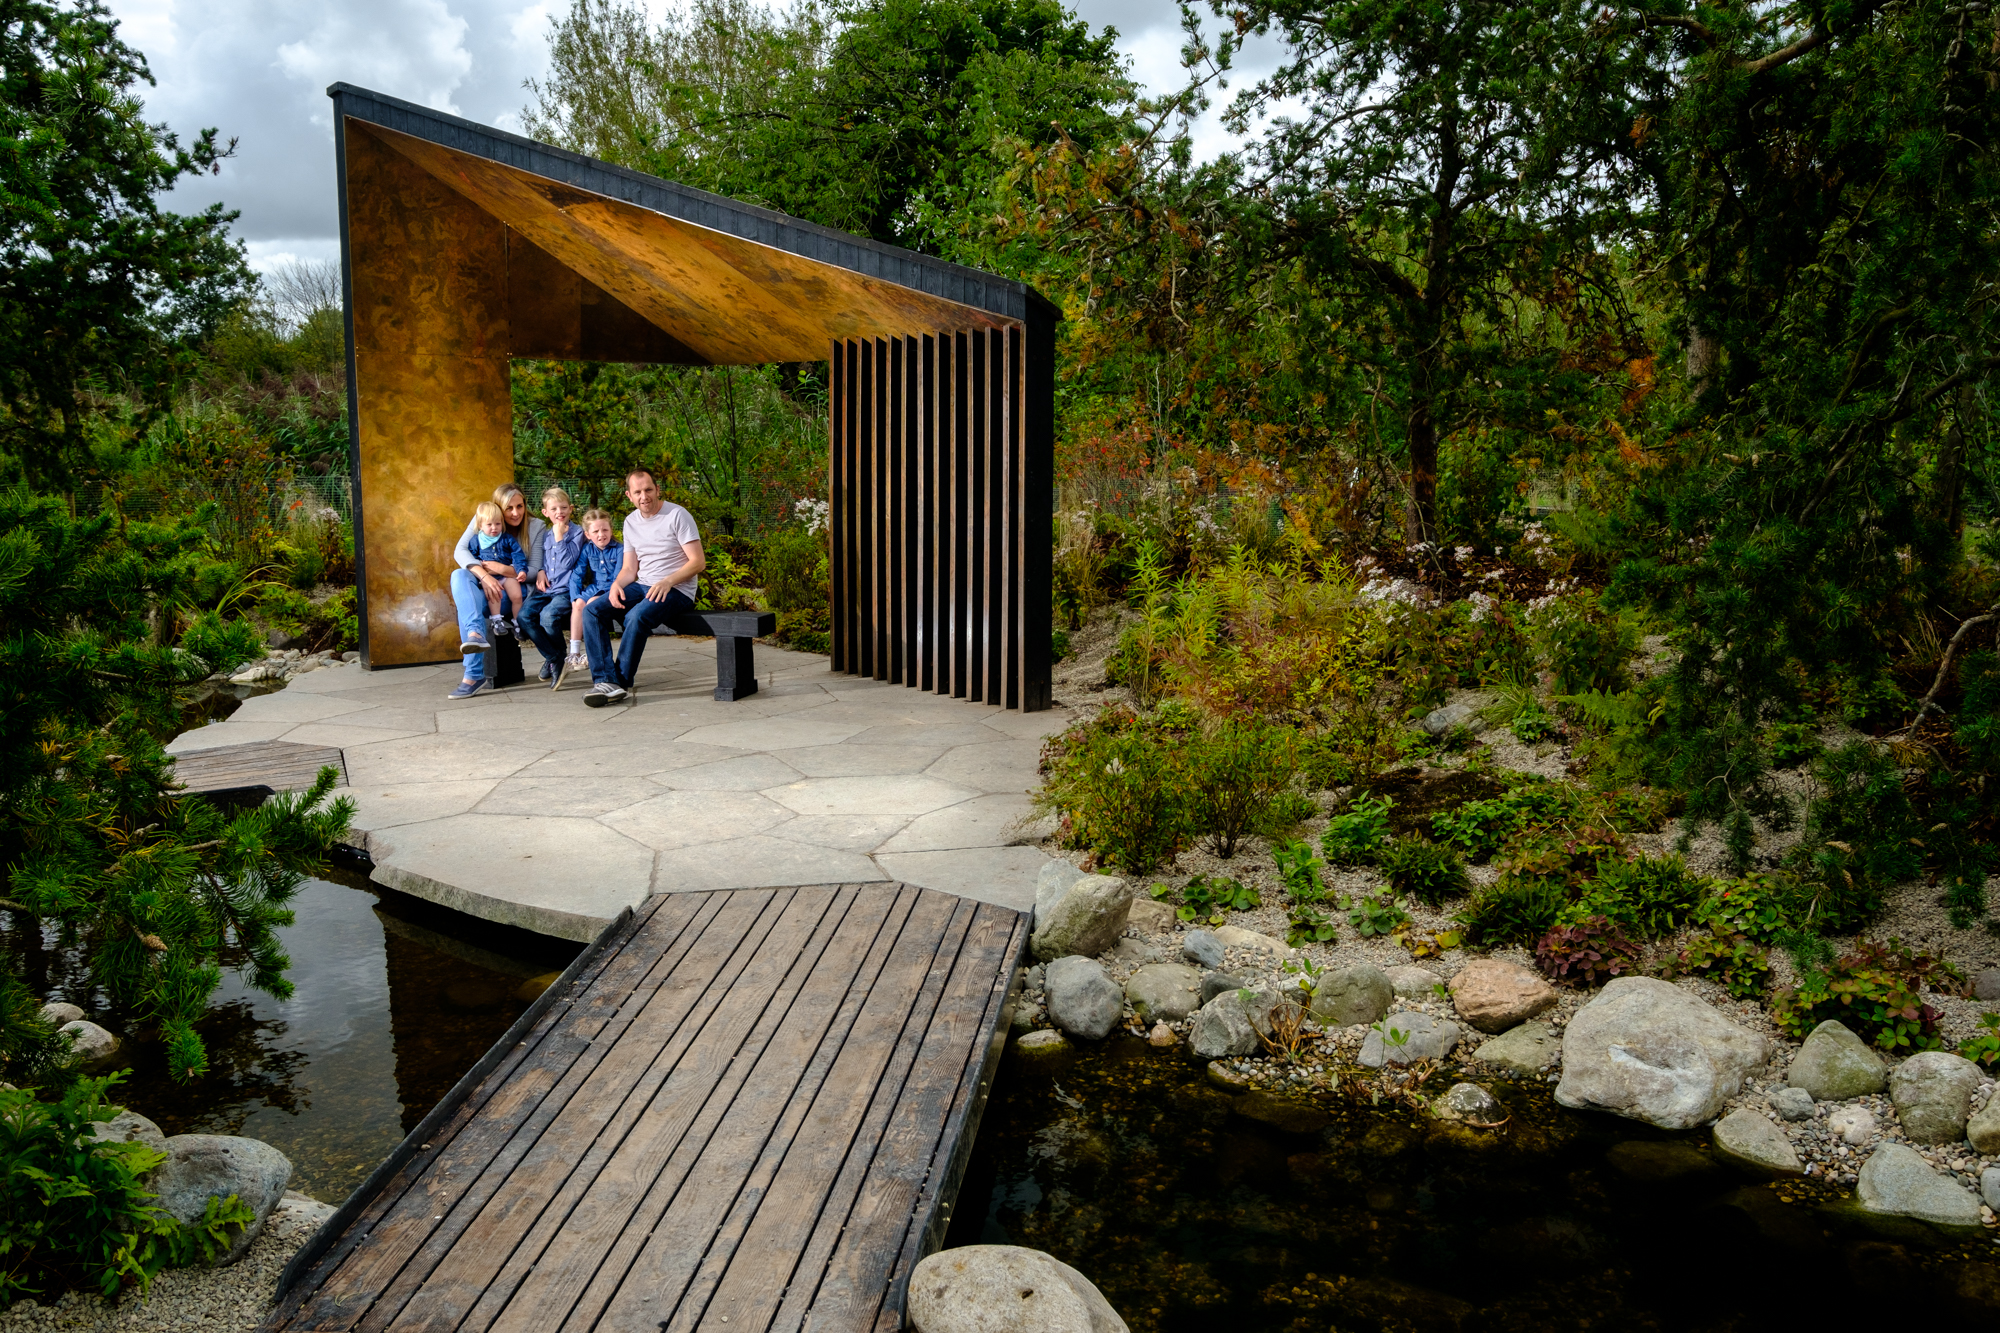 Inspired by the boreal forest and waterways of northern Ontario, the Gold medal winning Royal Bank of Canada Garden, as seen at the 2017 RHS Chelsea Flower Show has been relocated to WWT Martin Mere Wetland Centre.        The Royal Bank of Canada Garden from the 2017 RHS Chelsea Flower Show is...